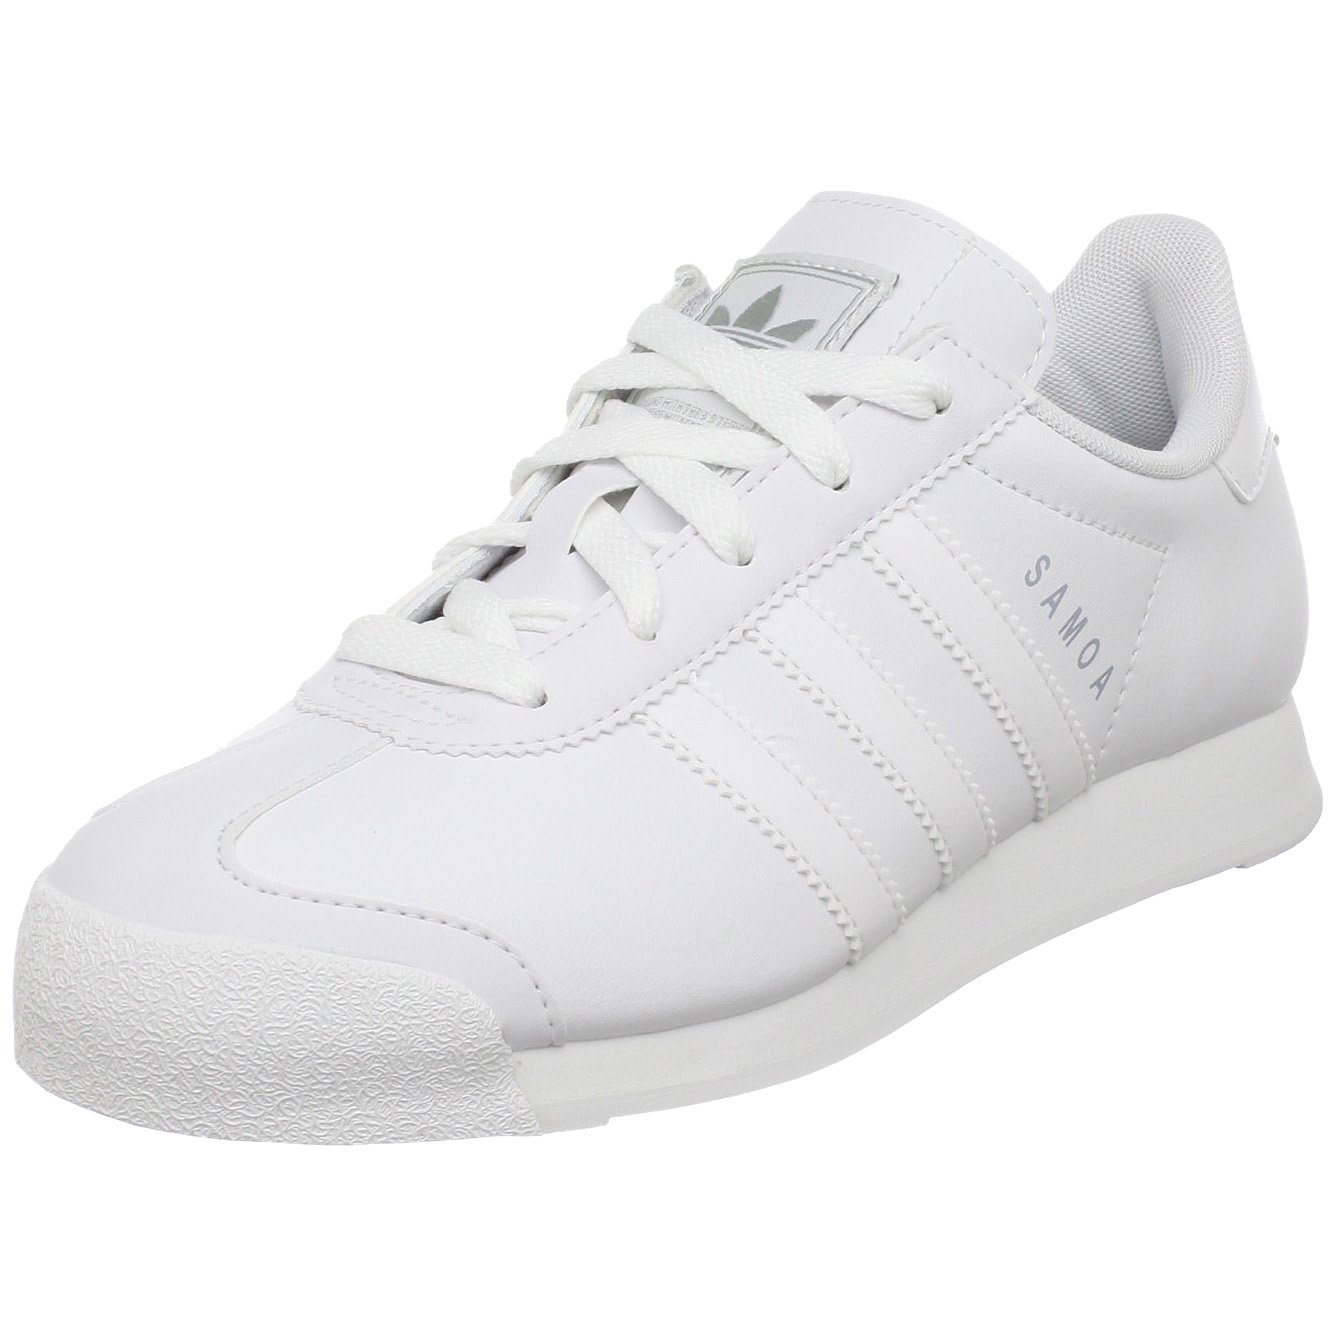 adidas Originals Samoa White/White/Silver Sneaker (Little Kid/Big Kid) 7 M US Big Kid